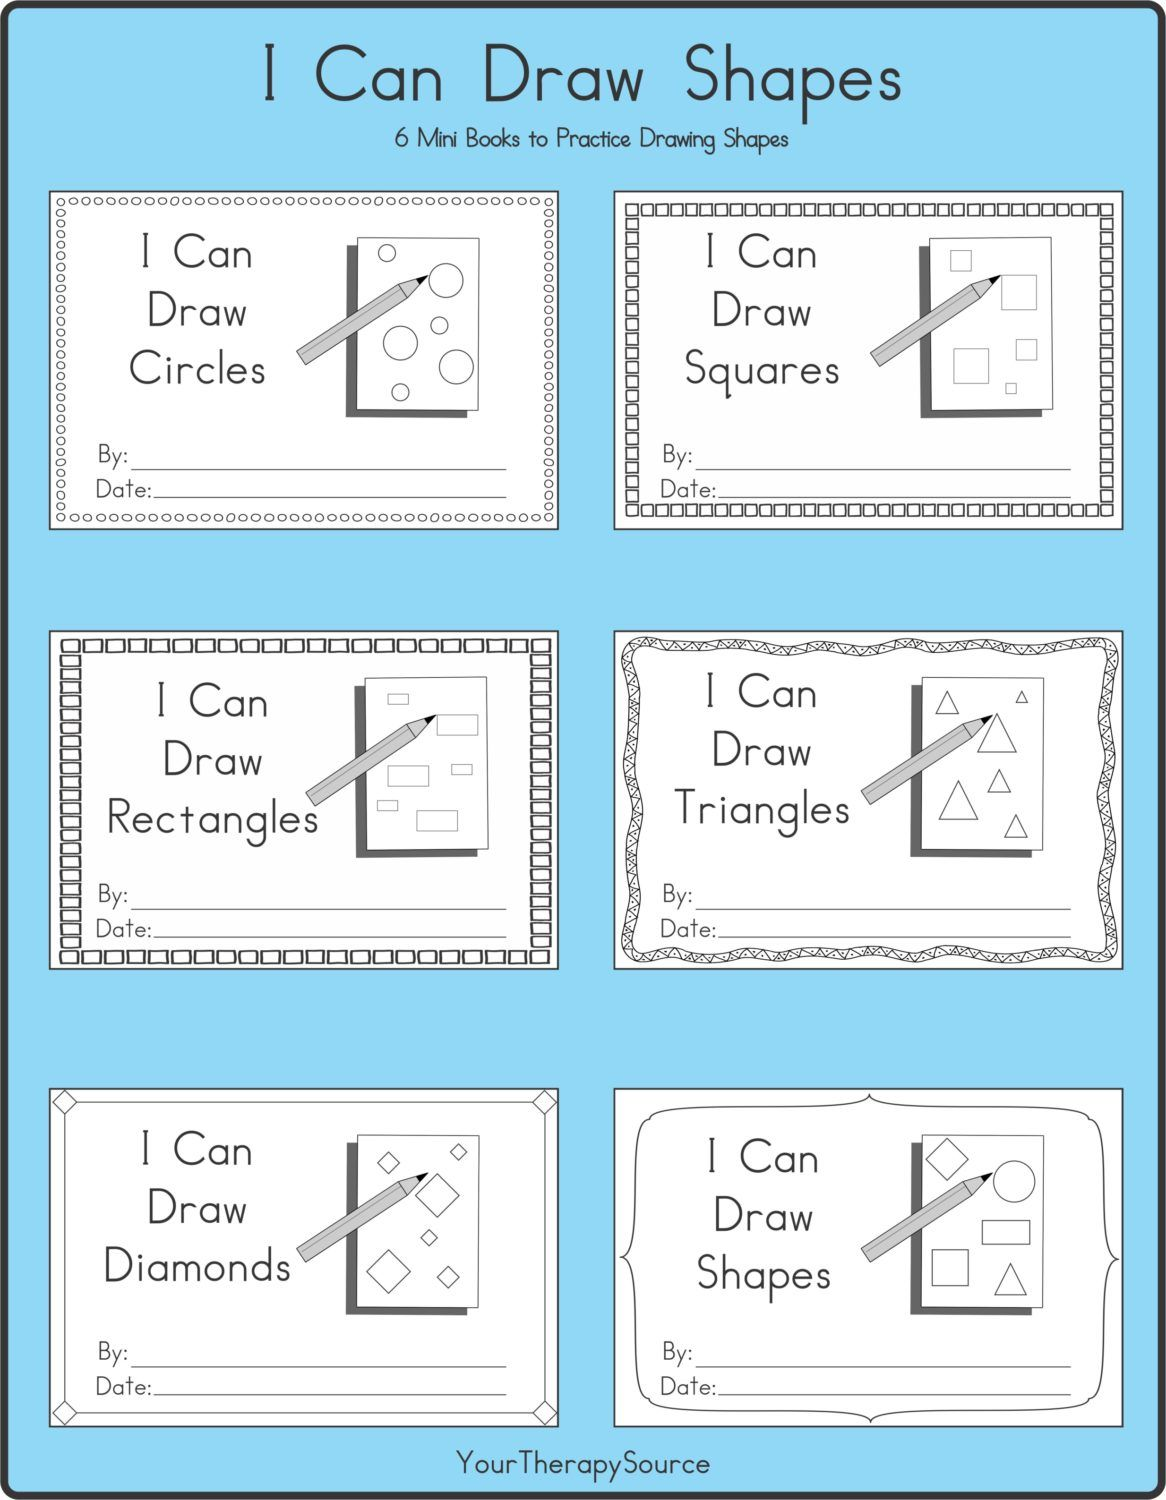 I Can Draw Shapes 6 Mini Books To Practice Drawing Shapes